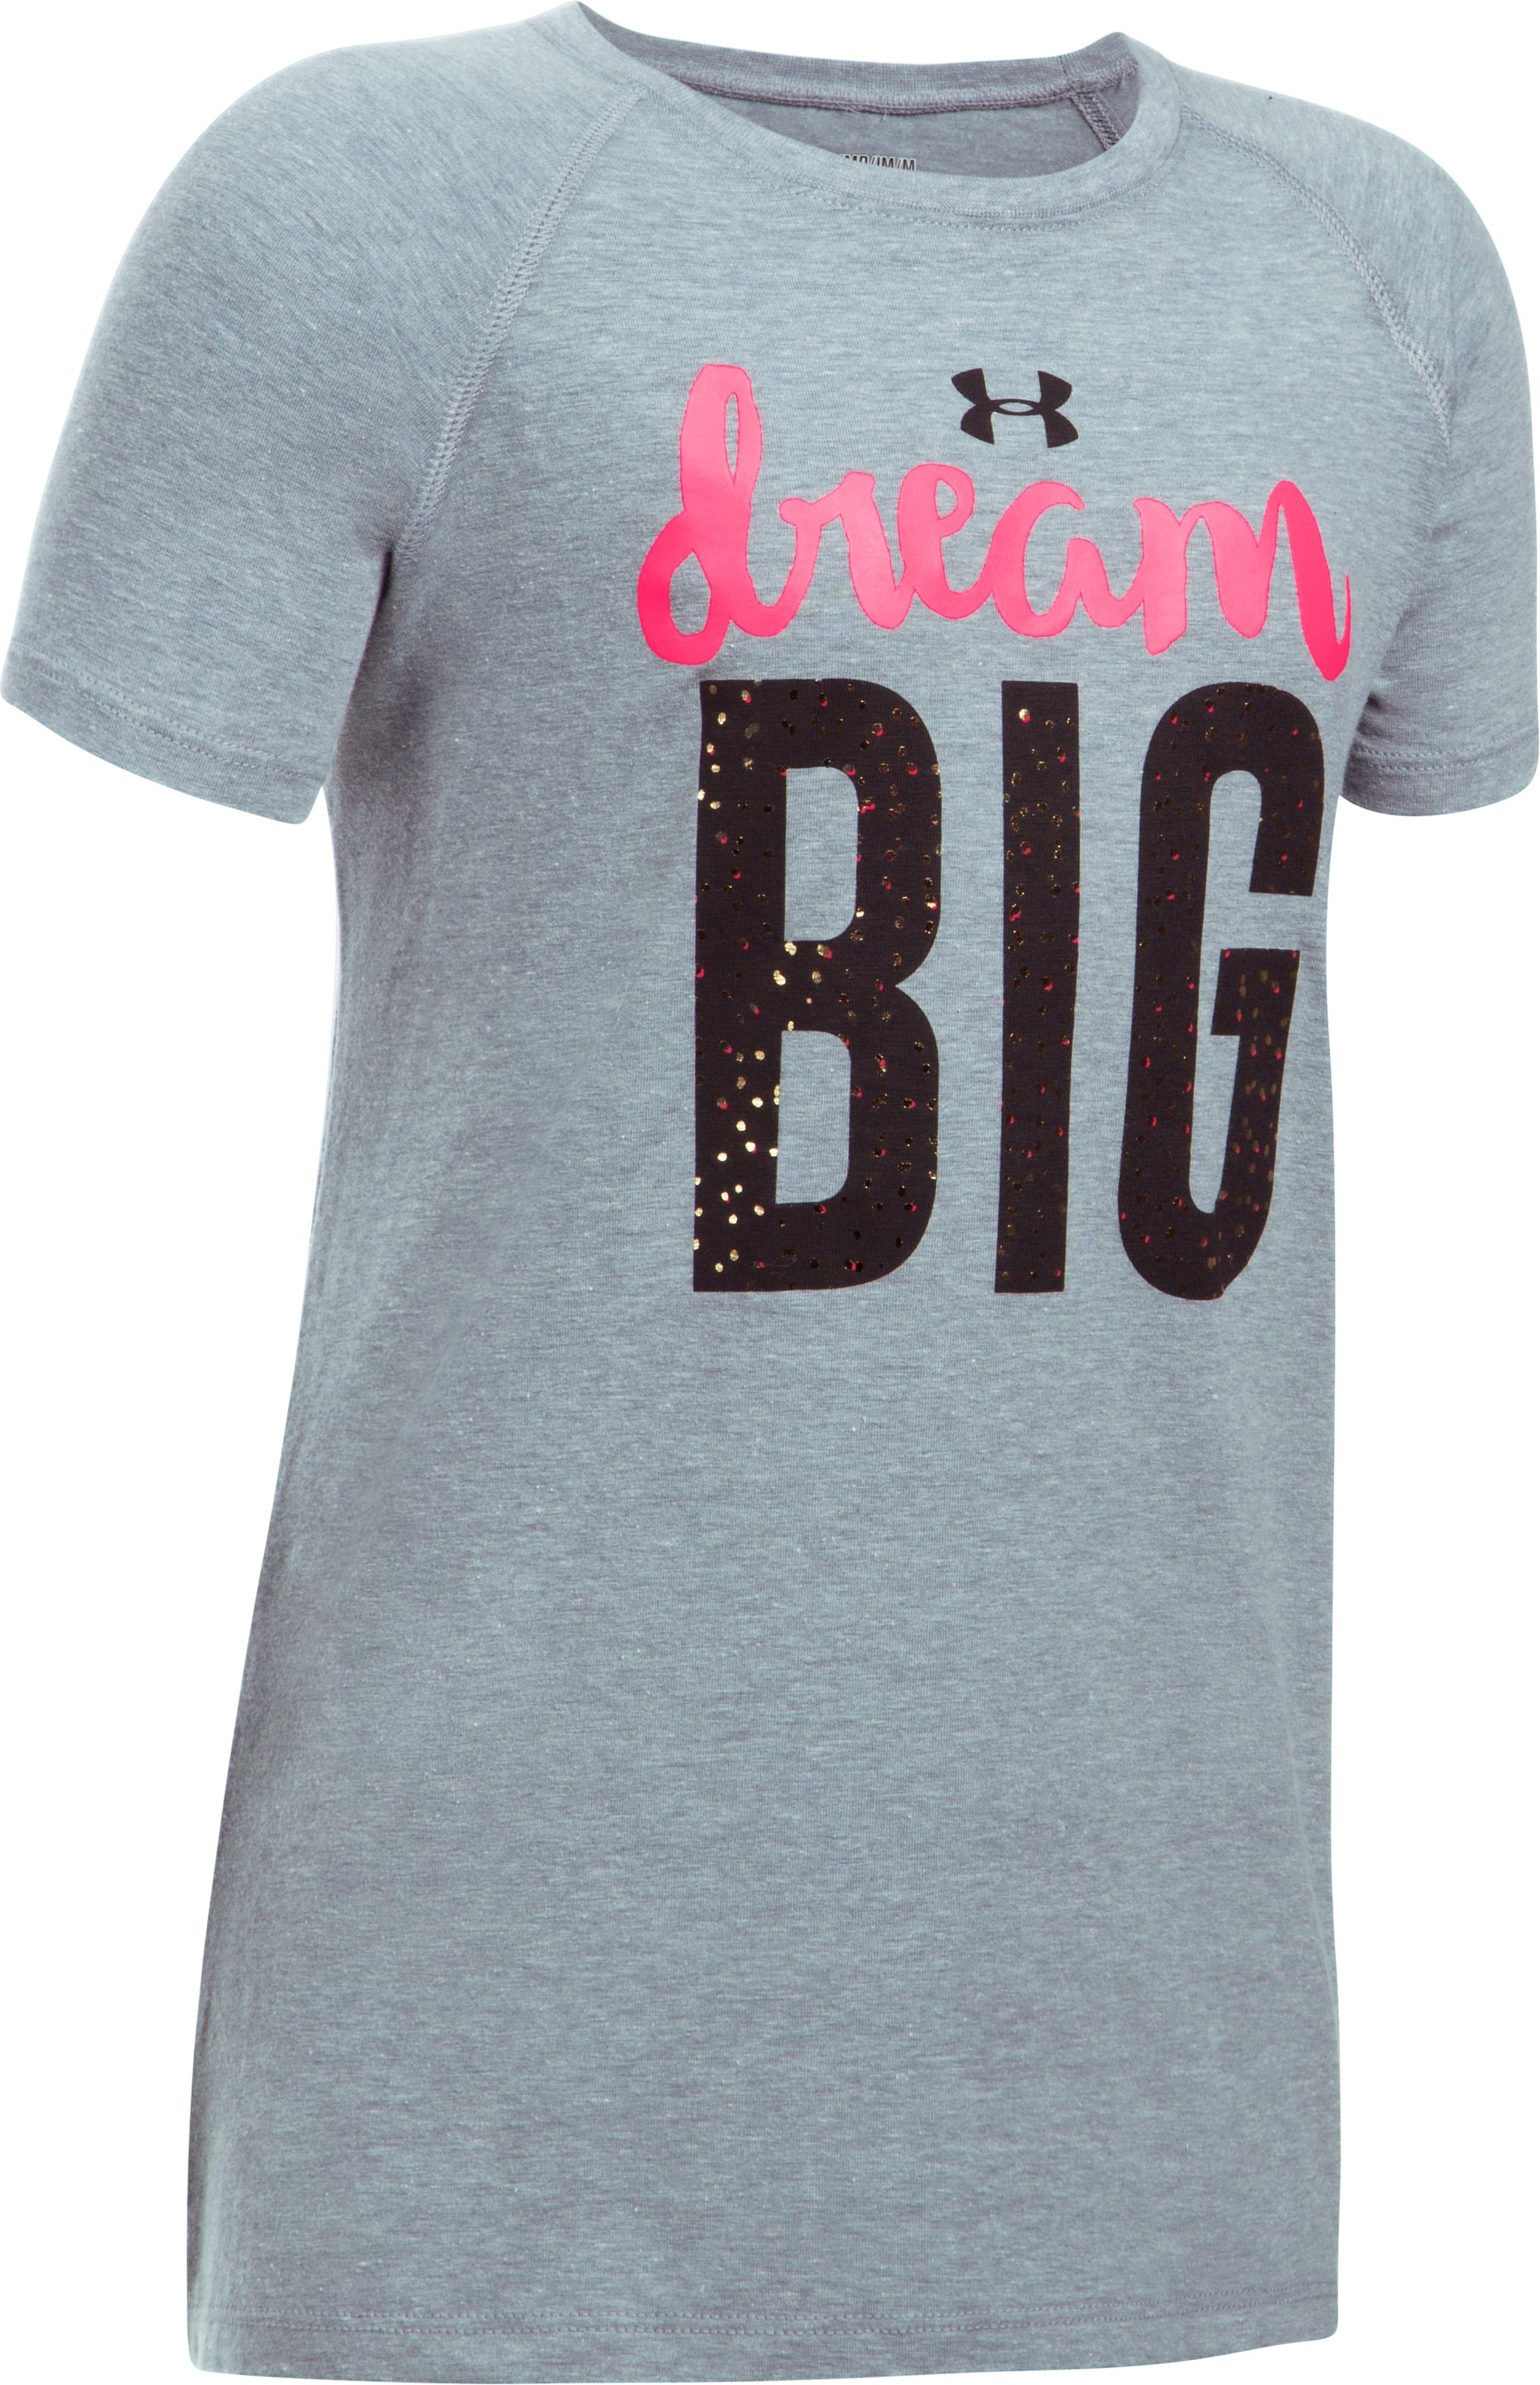 Girls' UA Dream Big Short Sleeve T-Shirt, STEEL LIGHT HEATHER